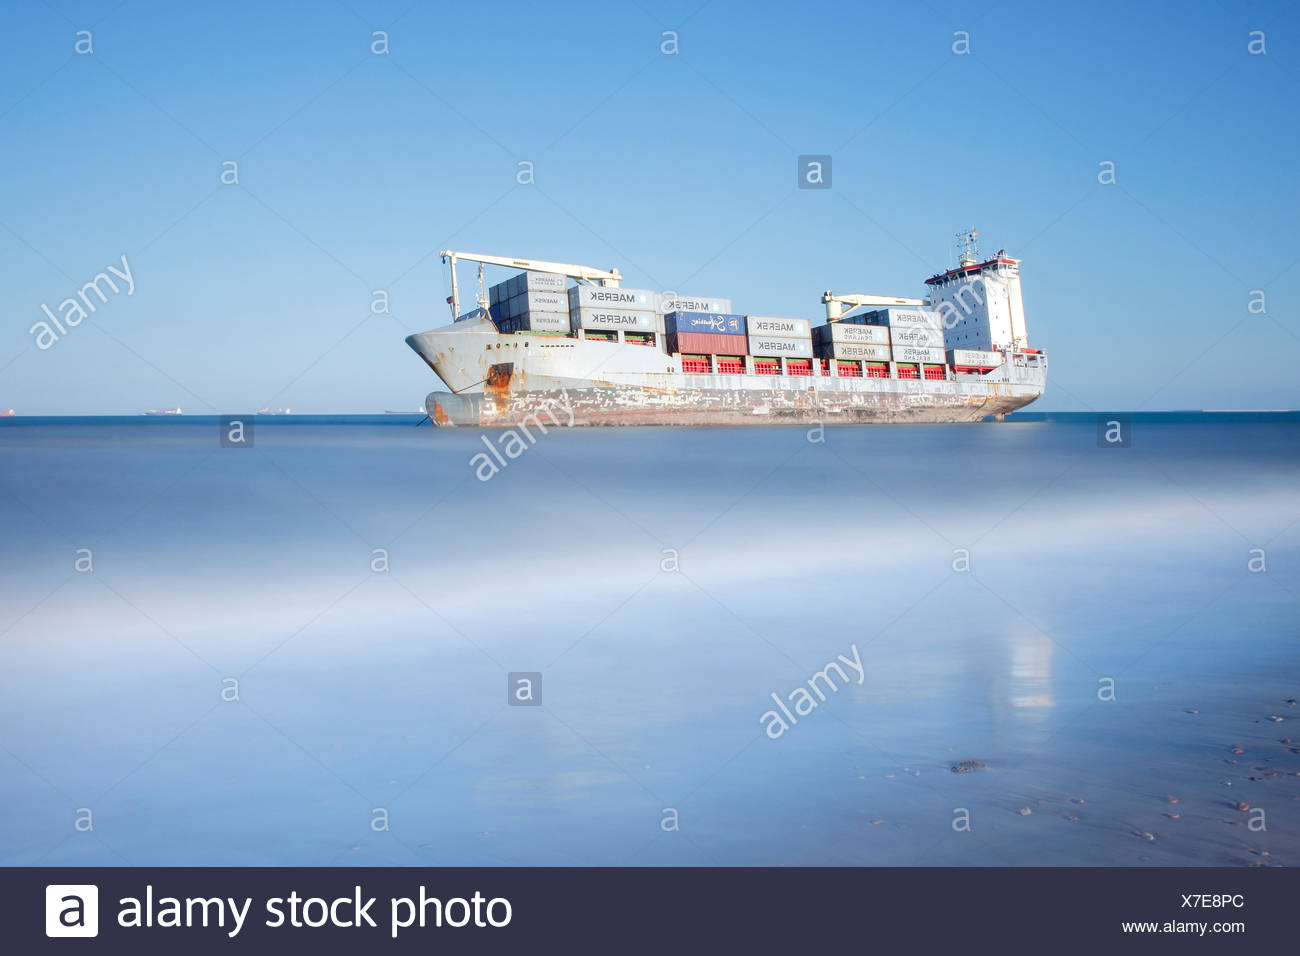 Stranded cargo ship, El Saler Beach, Valencia, Spain. All non-editorial uses must be cleared individually. - Stock Image